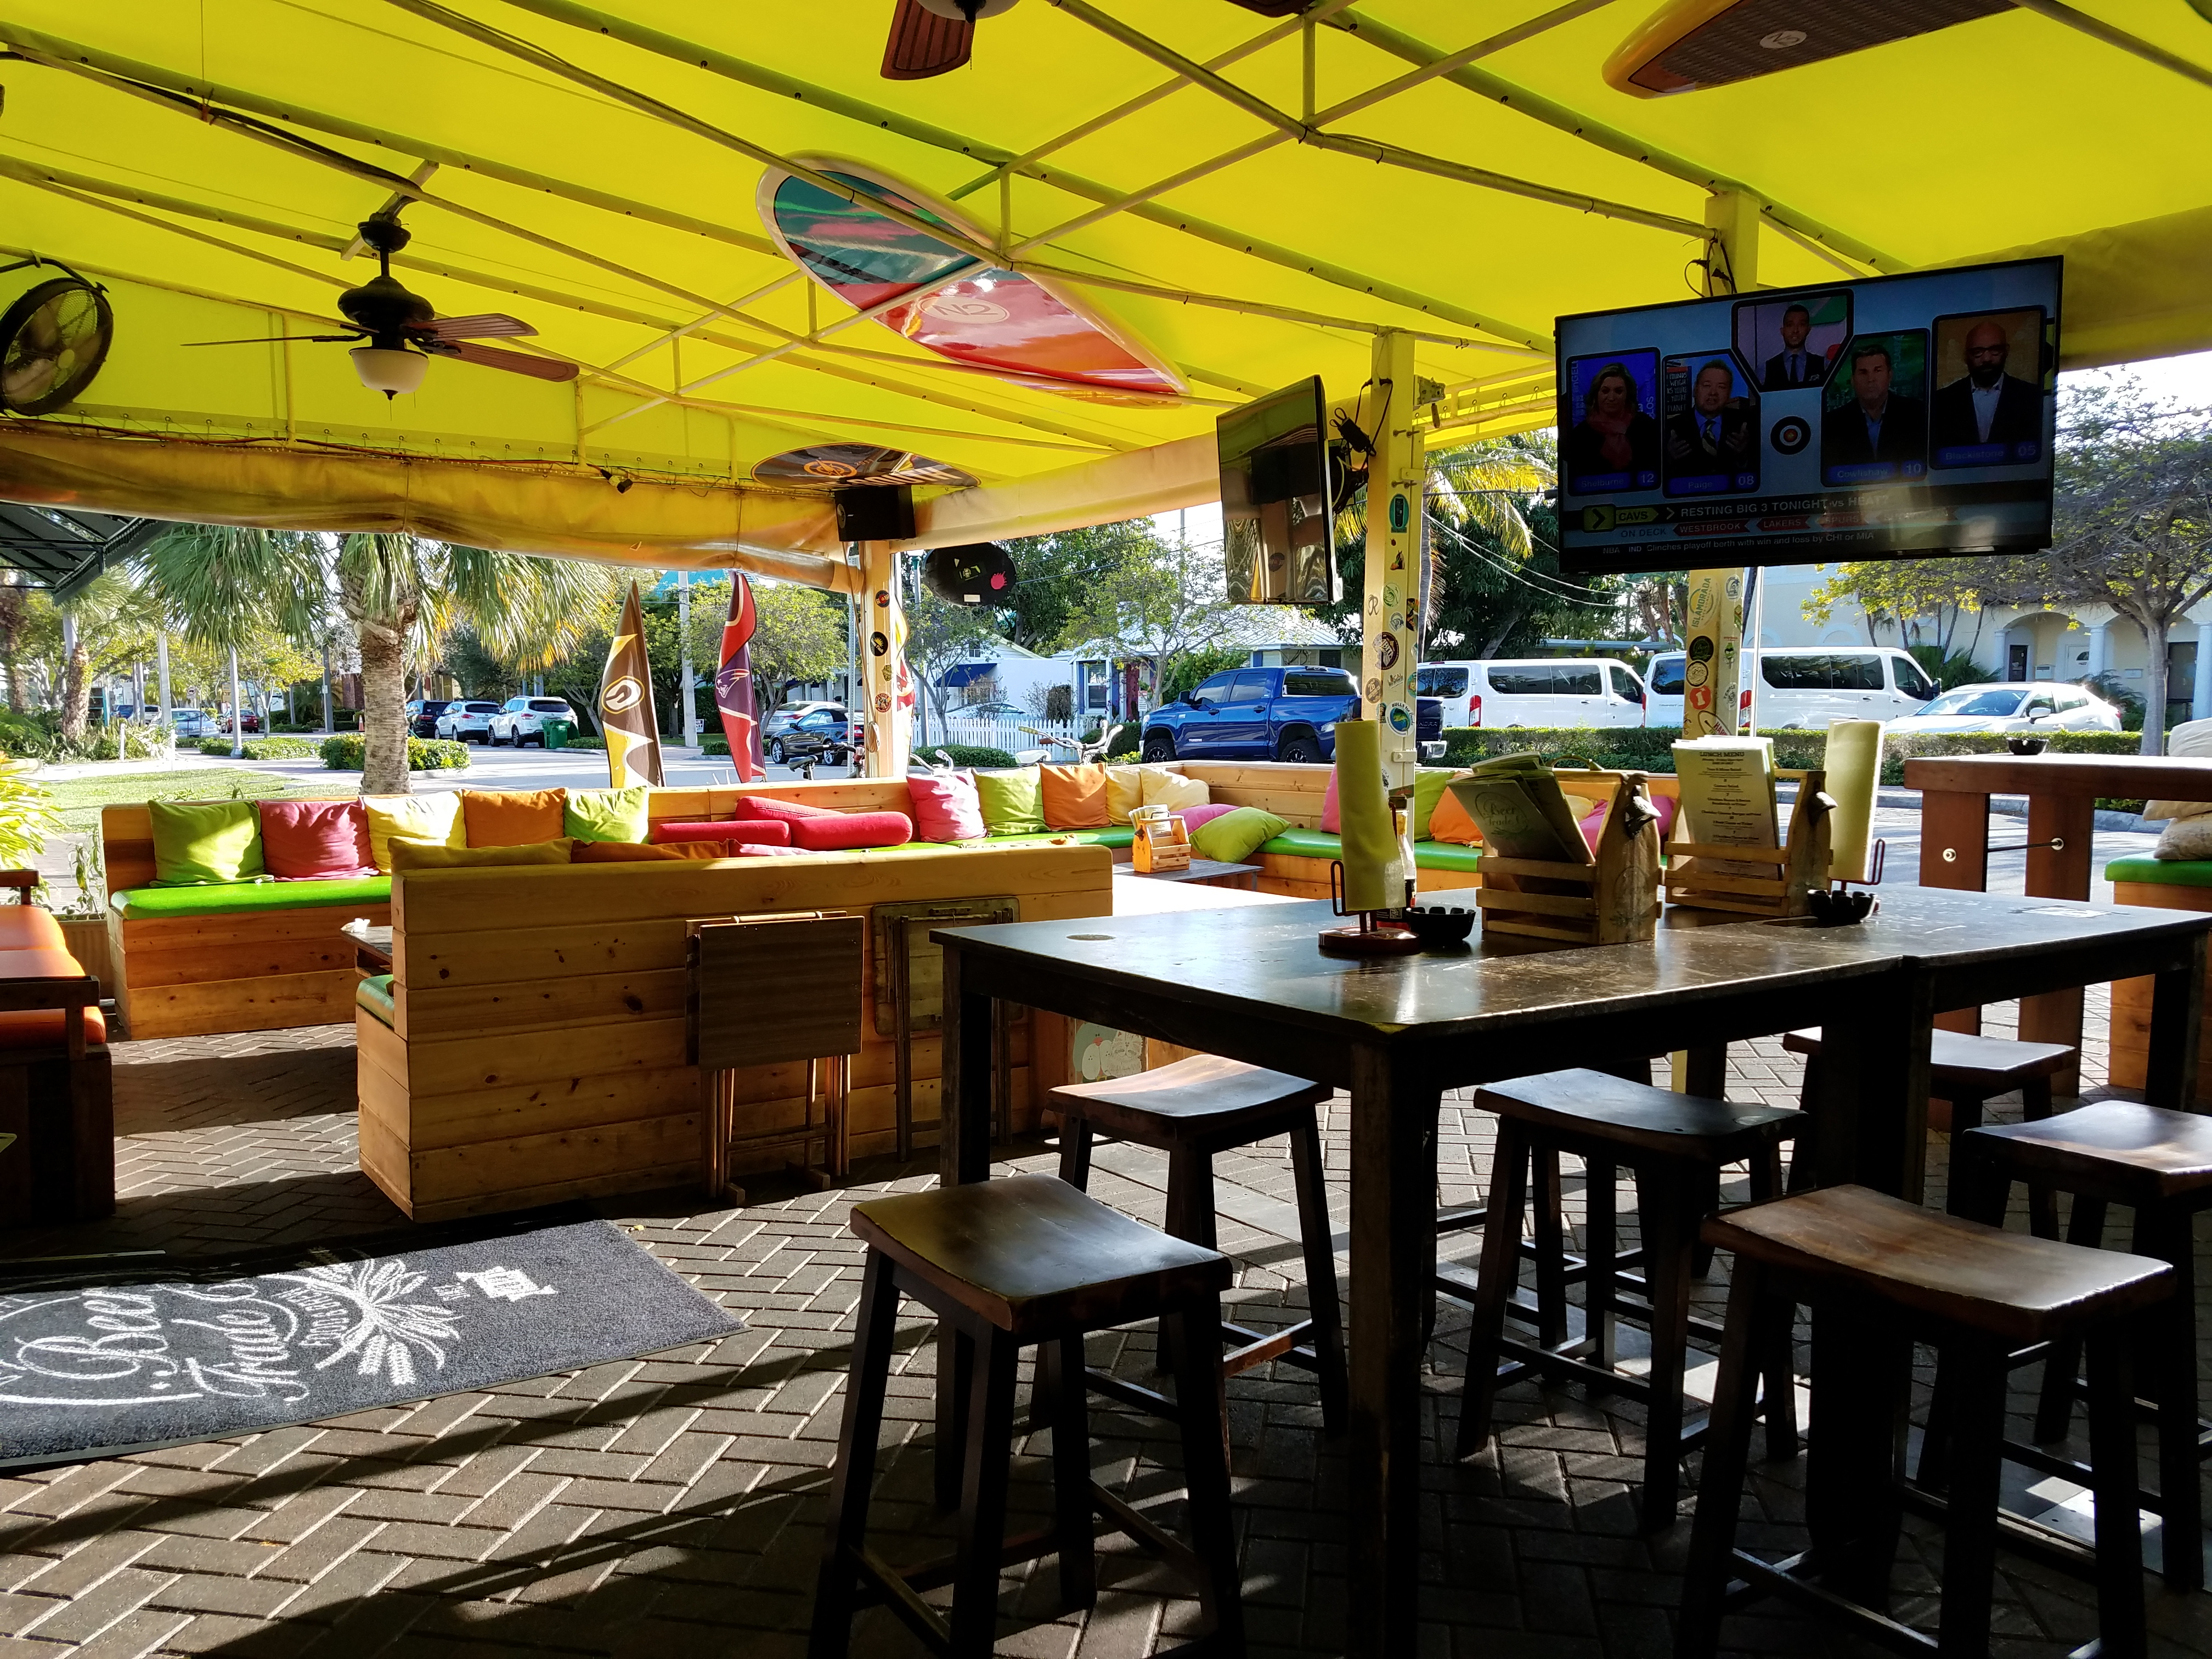 Furniture stores in delray beach fl - I Think This Is My Favorite Spot In Delray Beach Especially For Beer Drinkers It Is A Beer Store Bar And Restaurant We Were There On A Mon For Happy